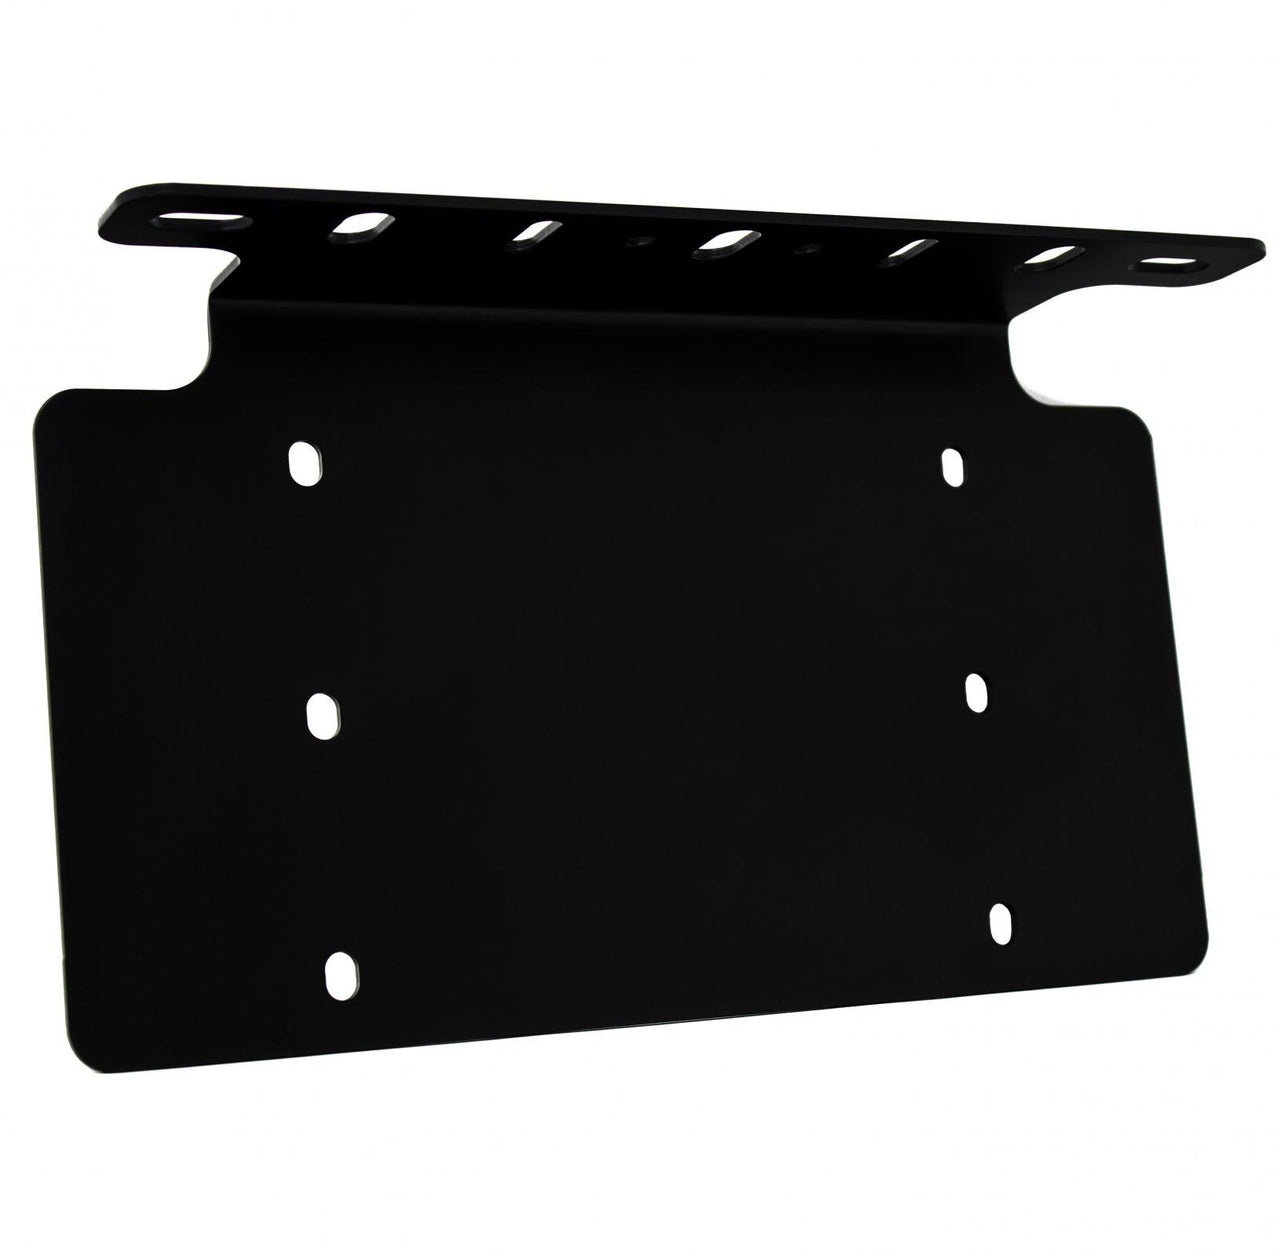 Universal Lighting License Plate Mount US Plate Baja Designs